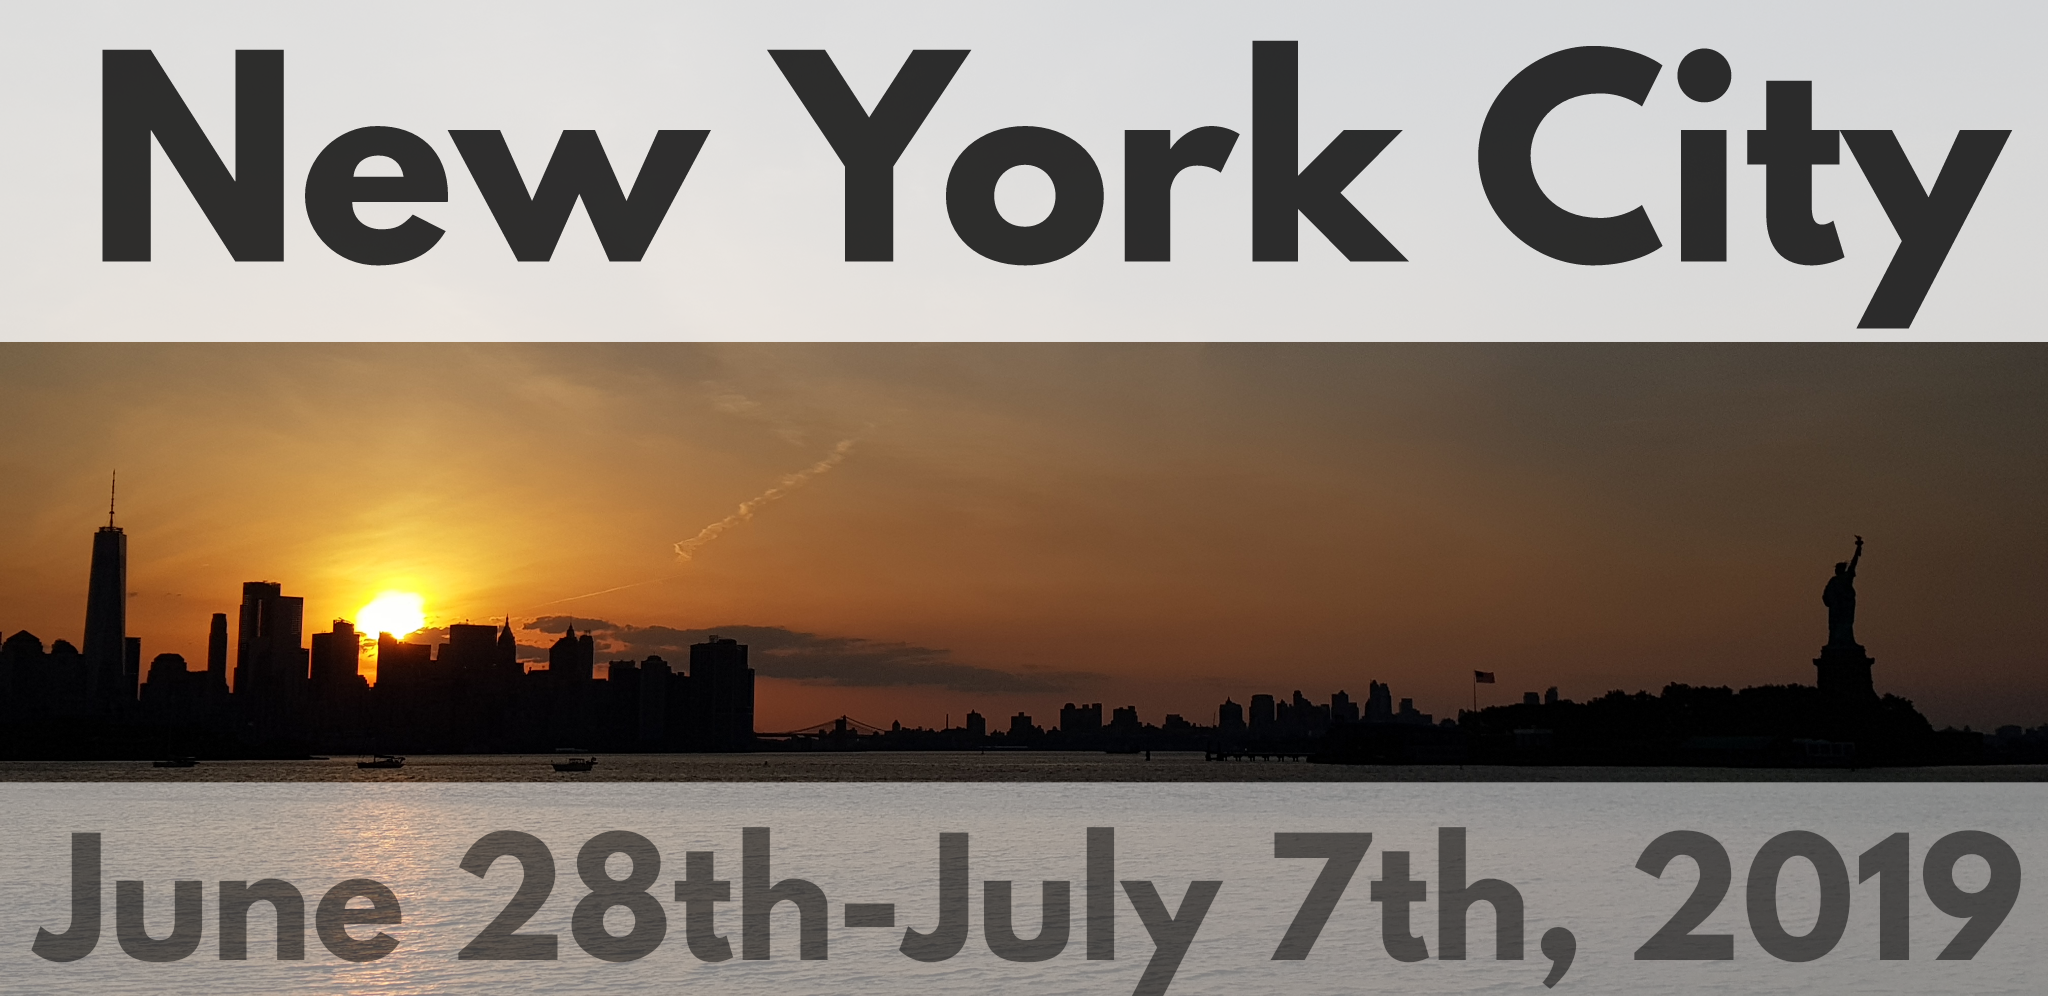 """The Concrete Jungle reTREAt - In city that never sleeps…and we get to celebrate """"The 4th of July…IndepenDANCE day!"""""""